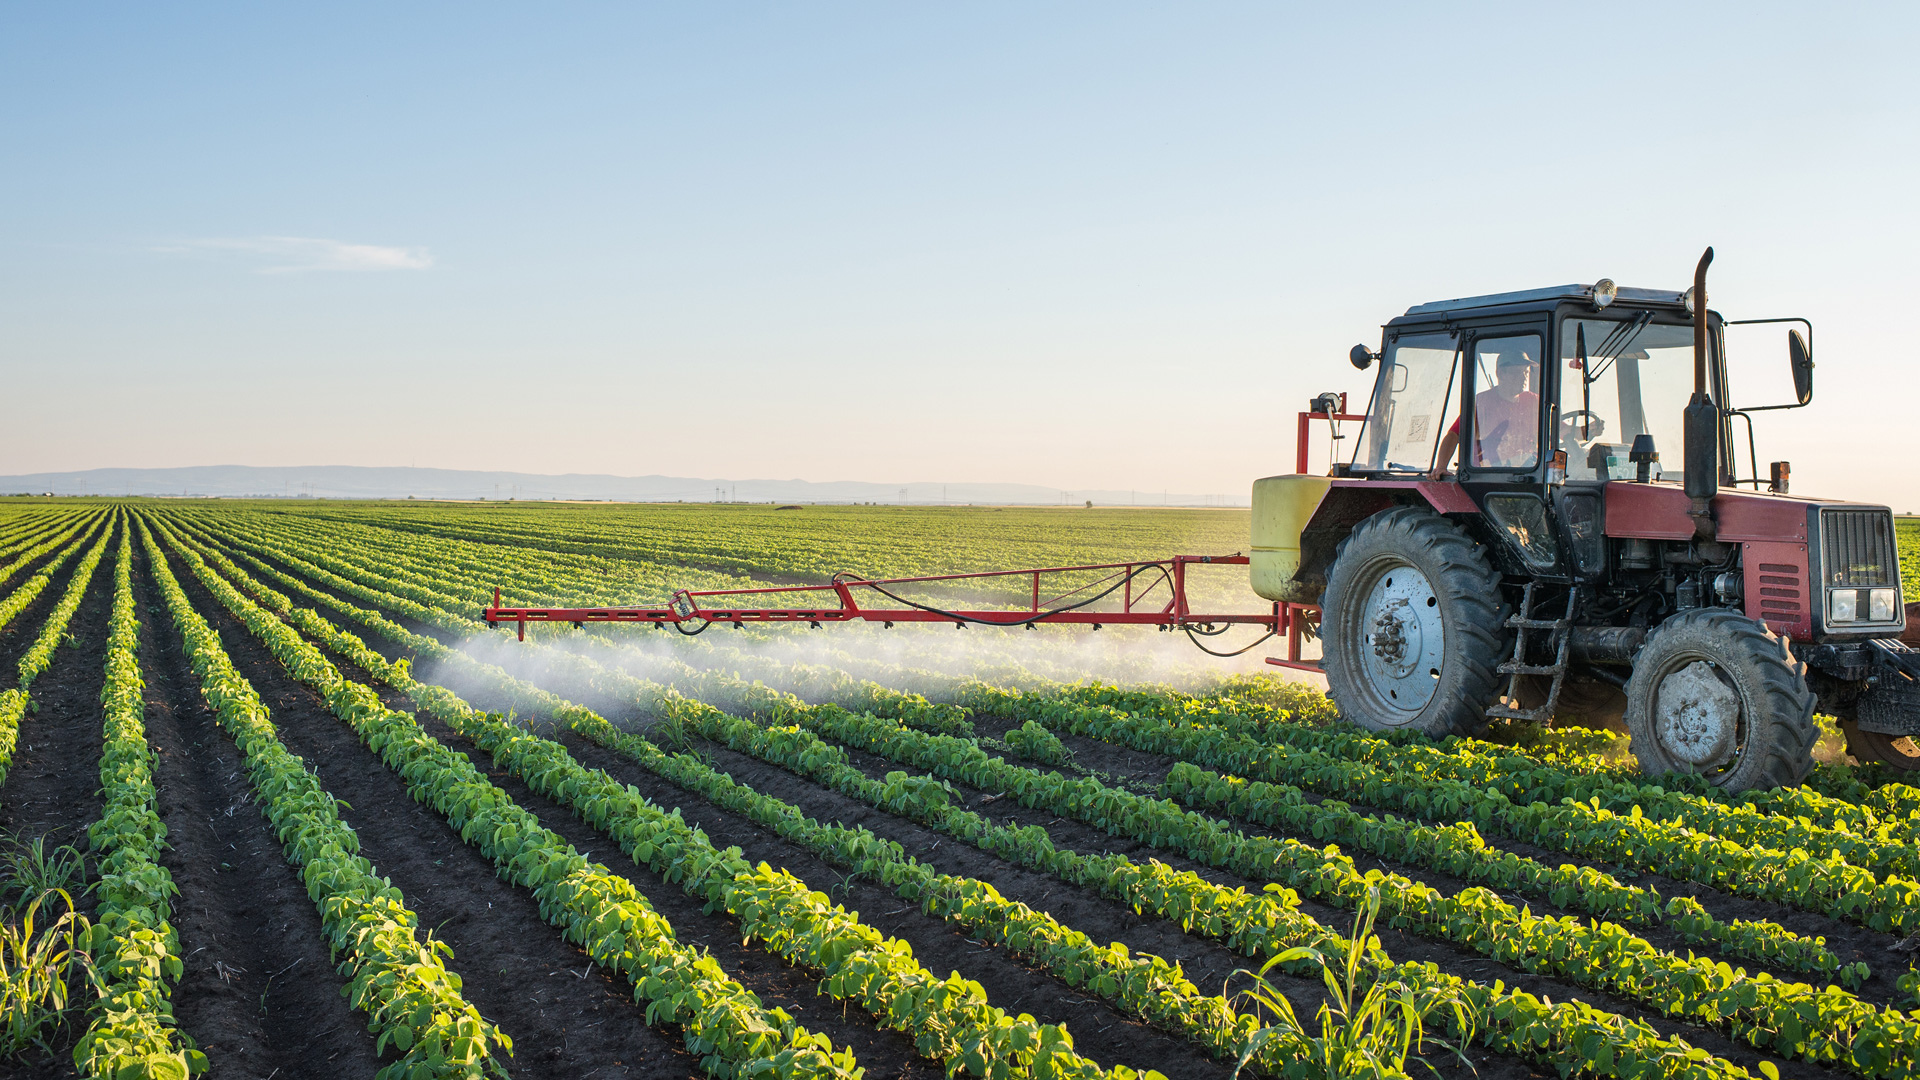 Thompson Spraying LTD: Crop Spraying, Custom Spraying and Agriculture Crop Spraying in Lacombe, Red Deer and Blackfalds